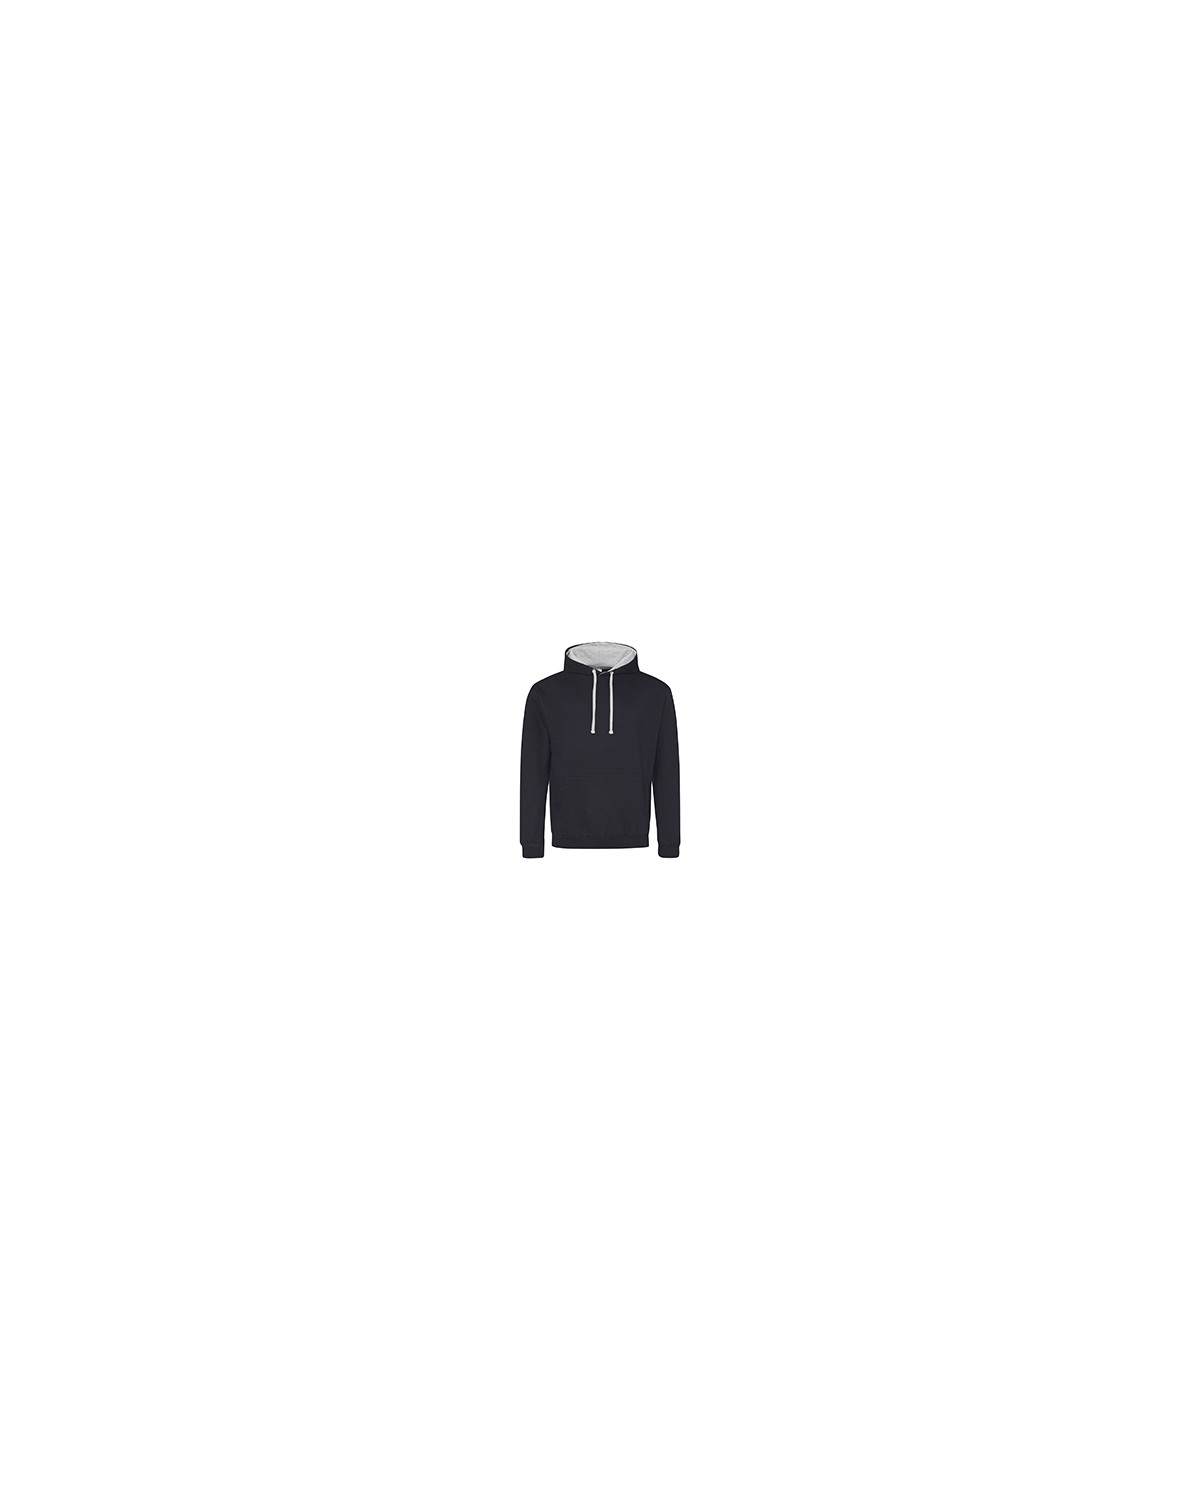 JHA003 Just Hoods By AWDis FRN NVY /HTH GRY